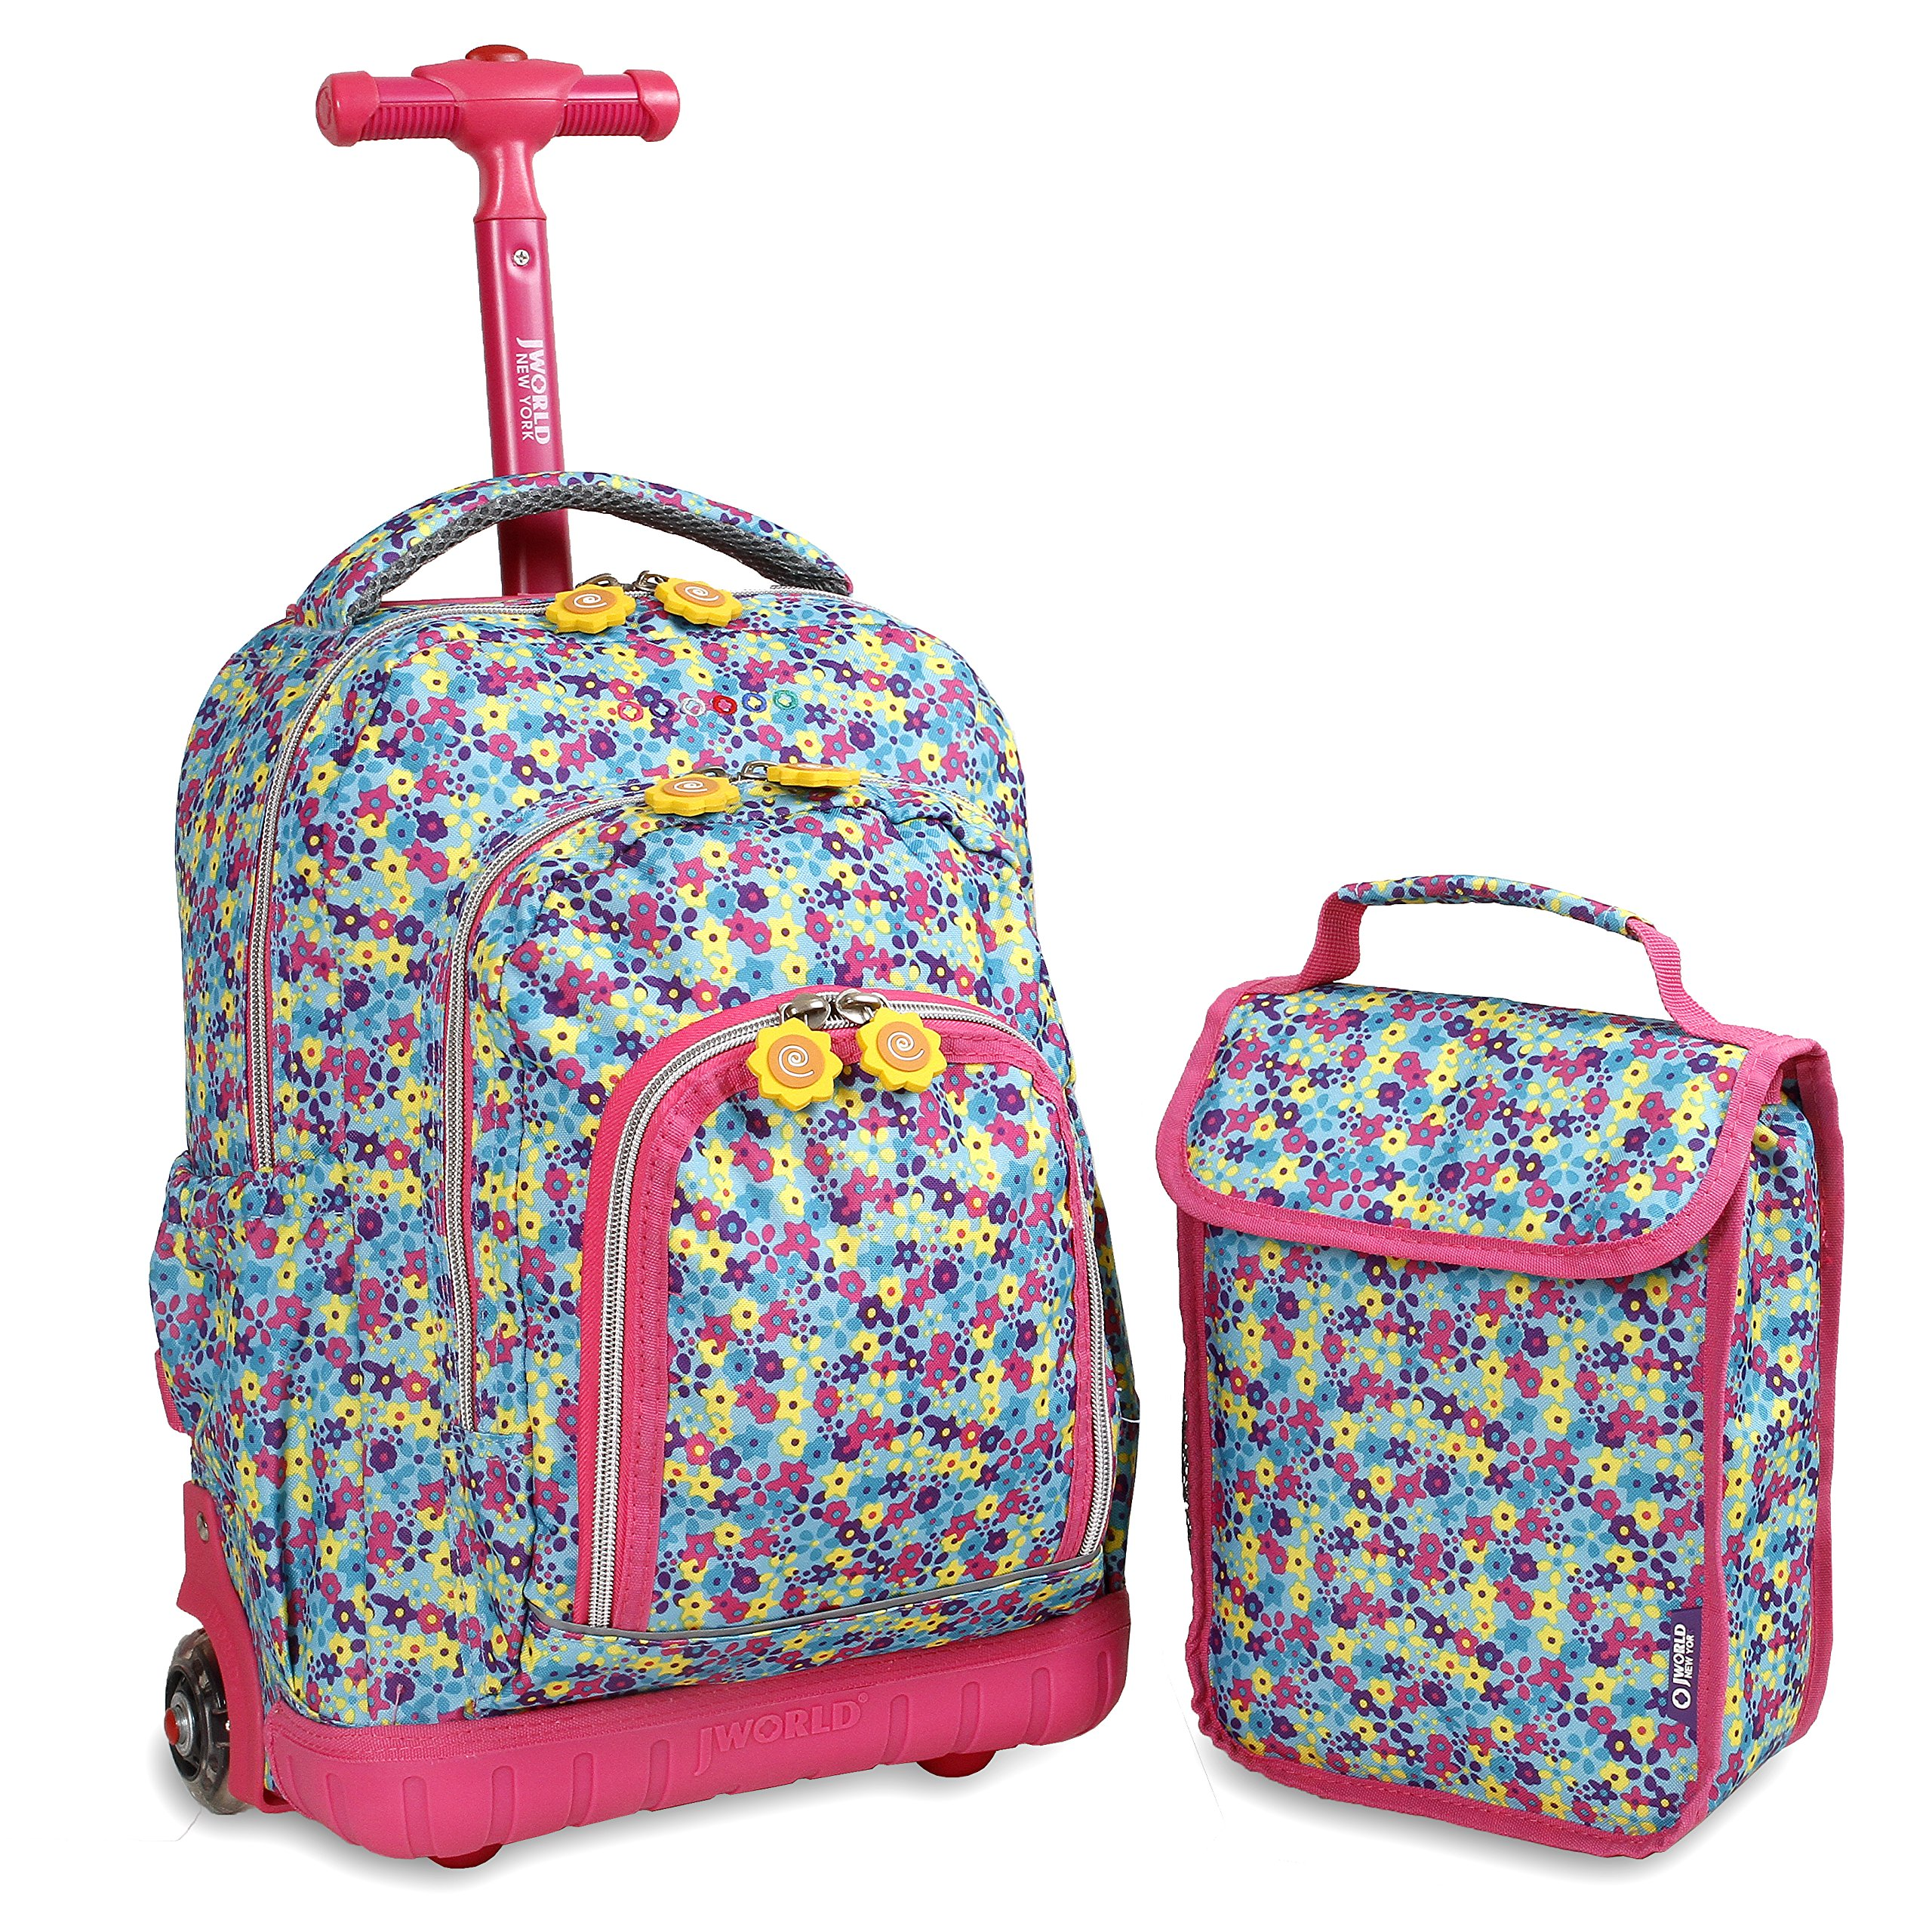 J World New York Kids' Lollipop Rolling Backpack with Lunch Bag, Floret by J World New York